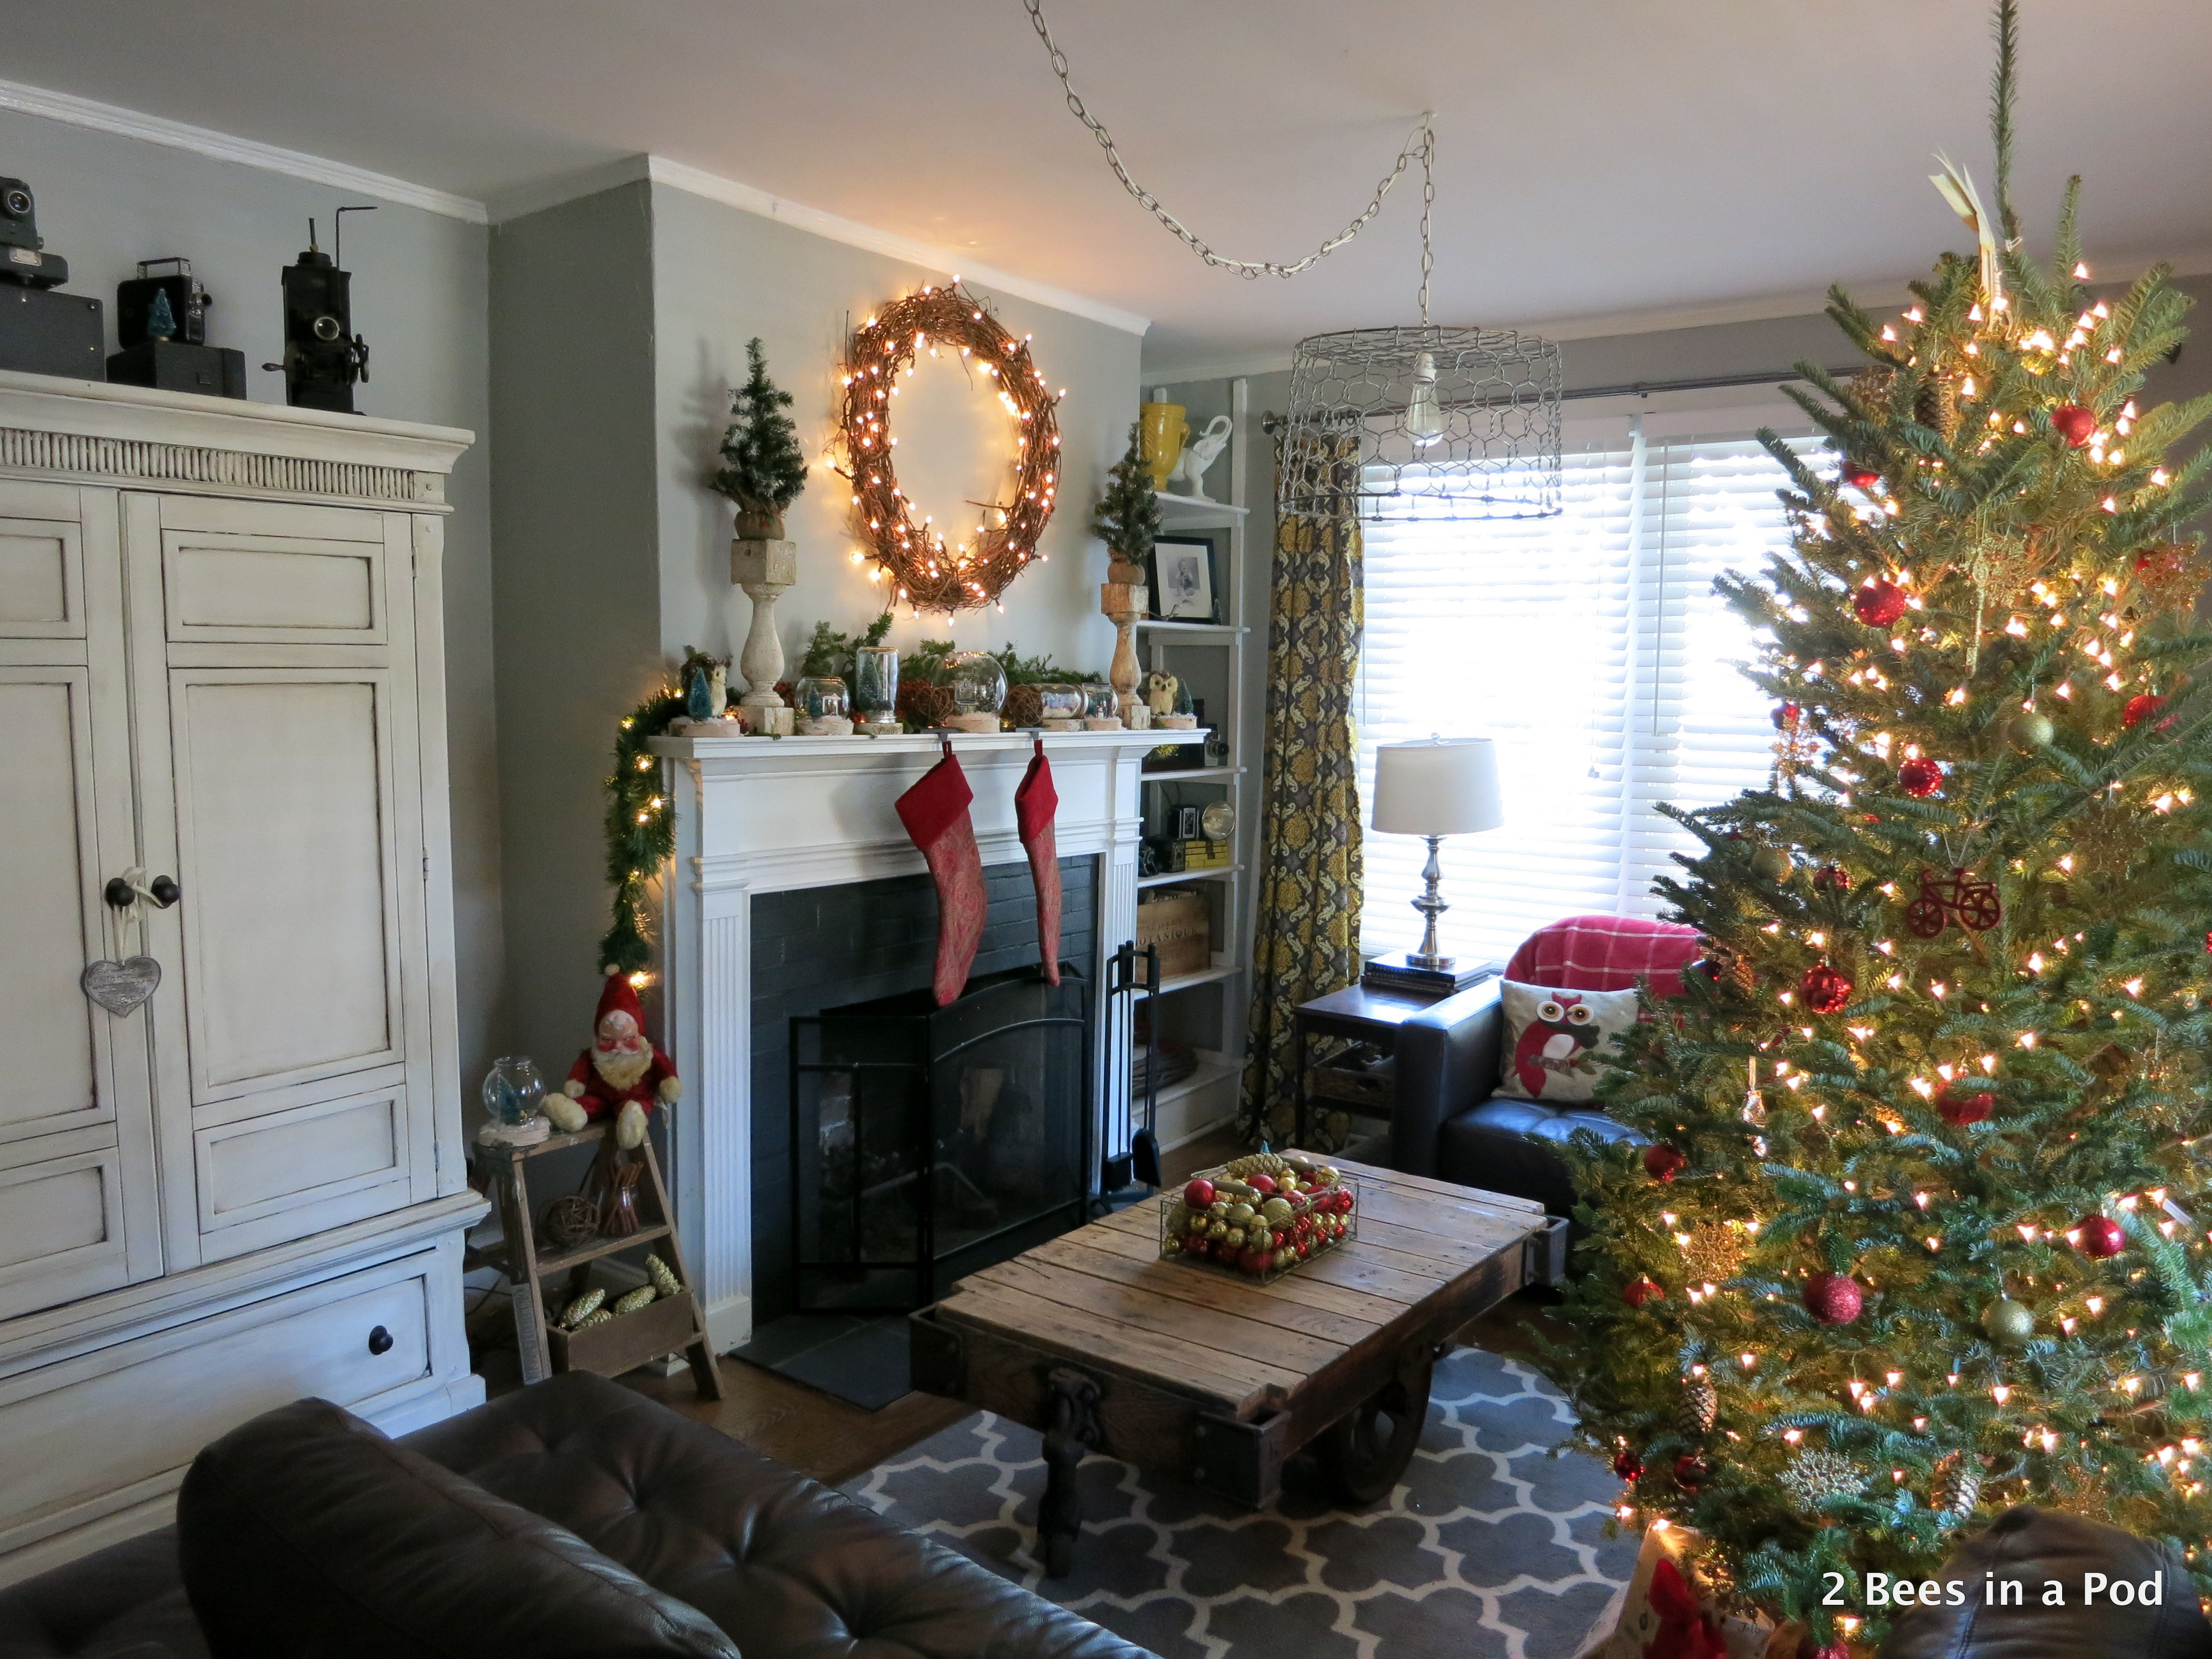 Christmas Home Tour. Living Room overview with Christmas Tree with red and gold ornaments, owl pillows, rustic mantel with woodland owls, grape wreath, and mason jar vignettes 1